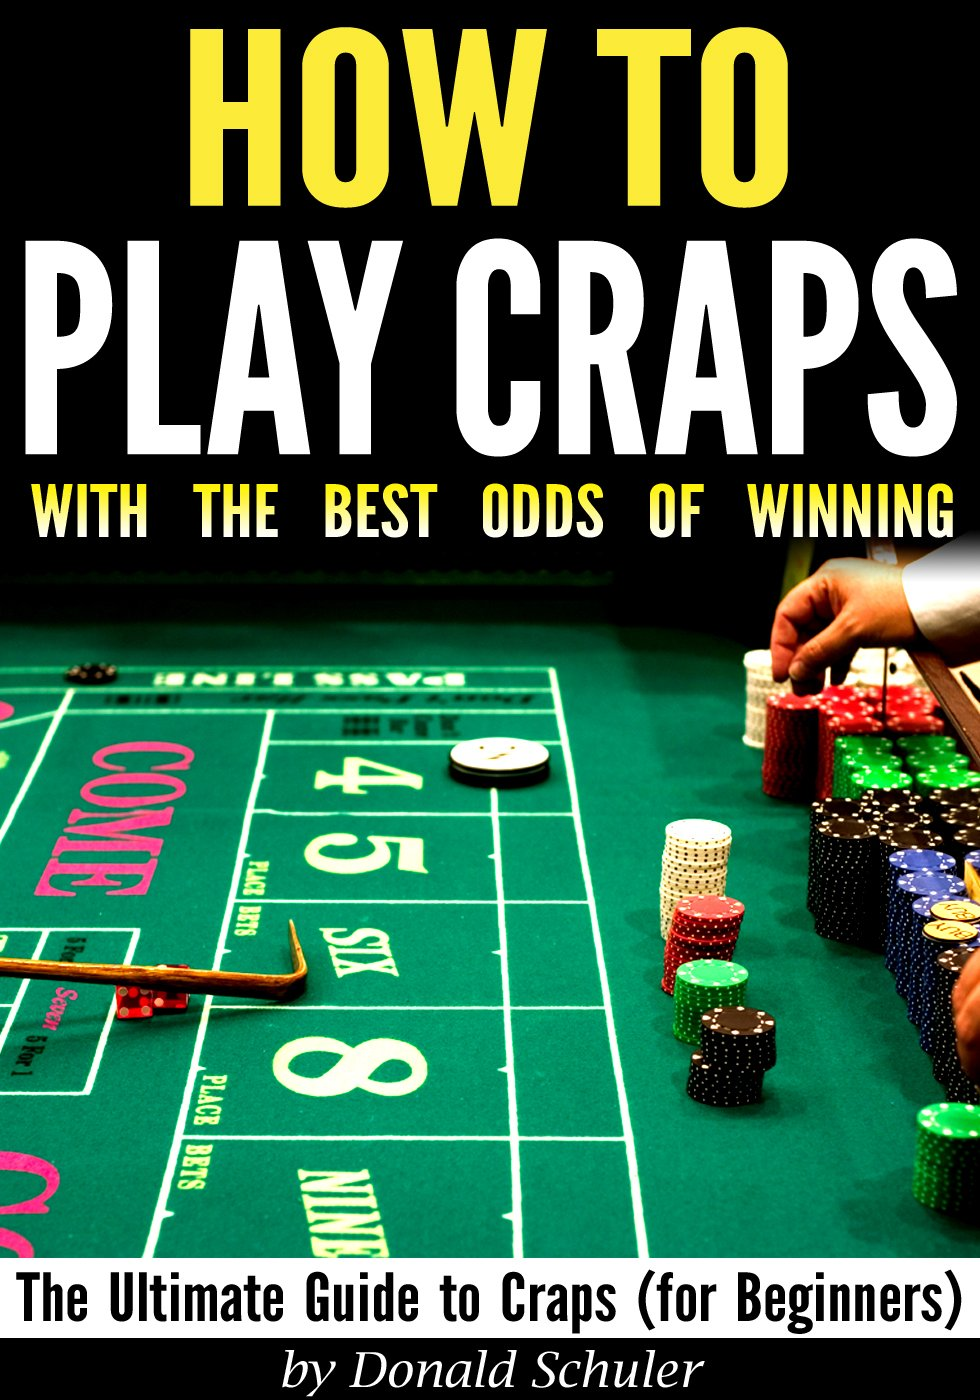 Best method to win at craps